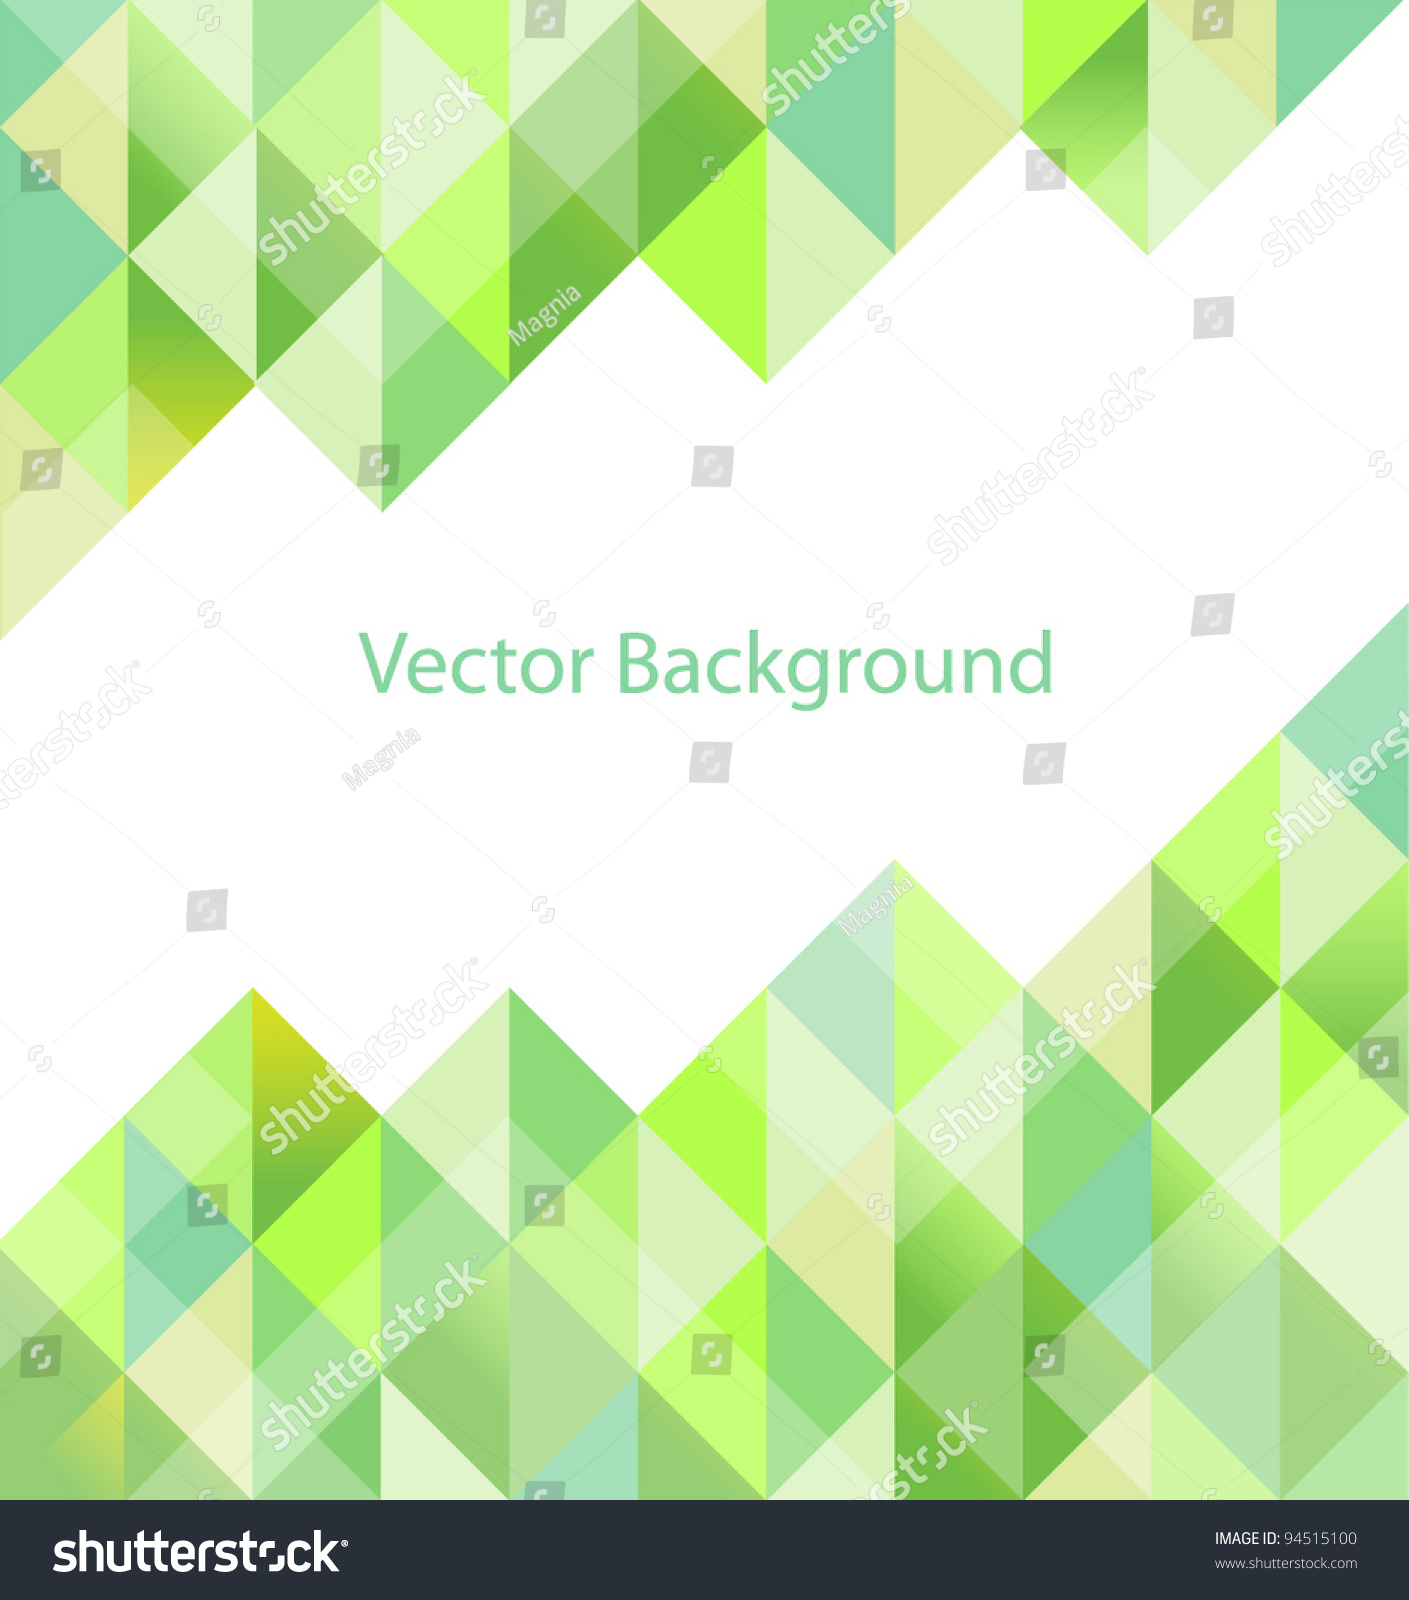 stock vector geometric background - photo #12